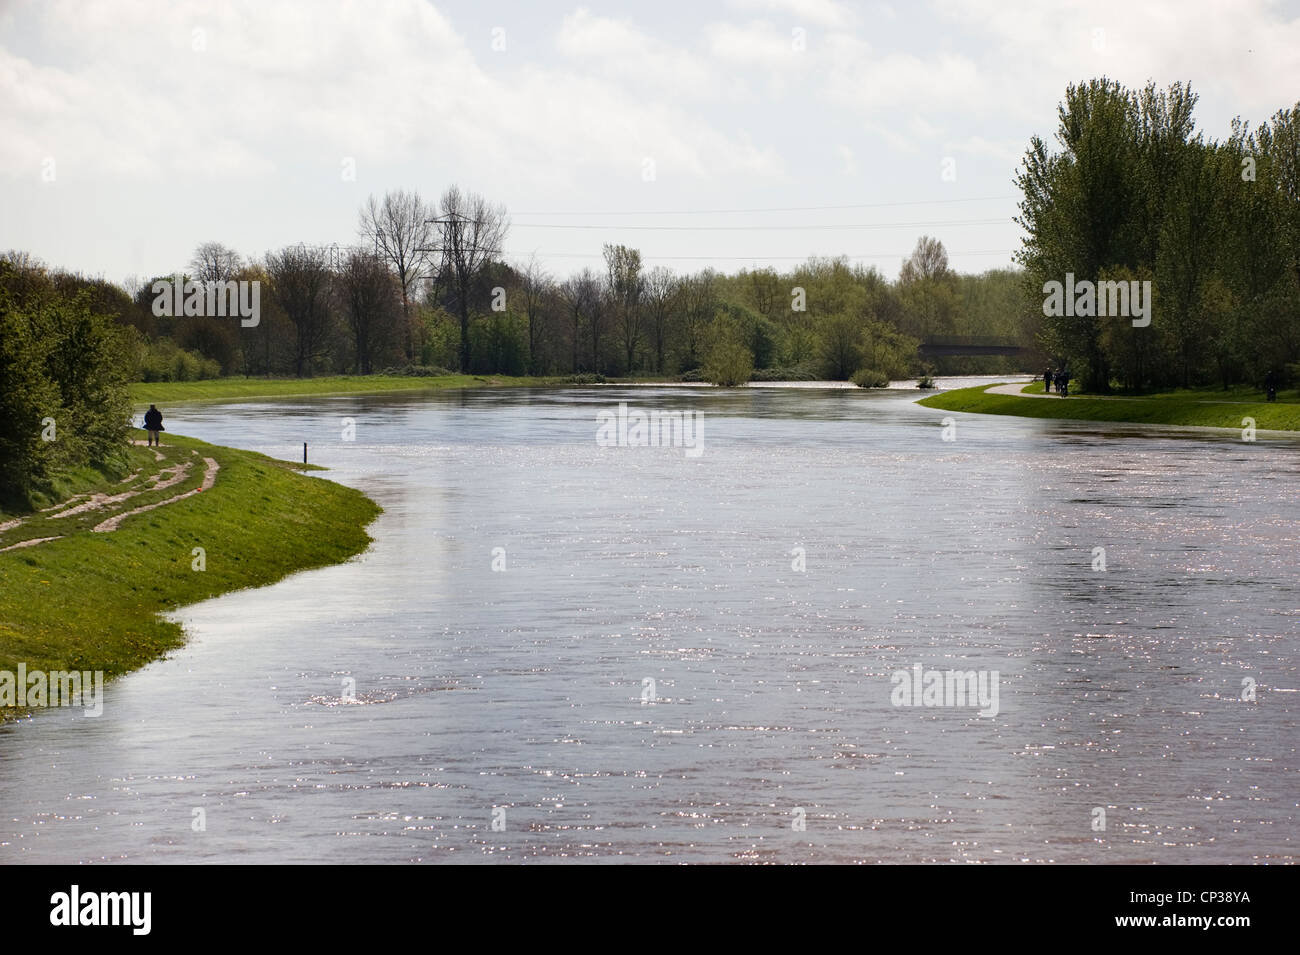 The River Exe overflowing into Exeter's flood relief and breaking the banks of the Quay following heavy rain. - Stock Image